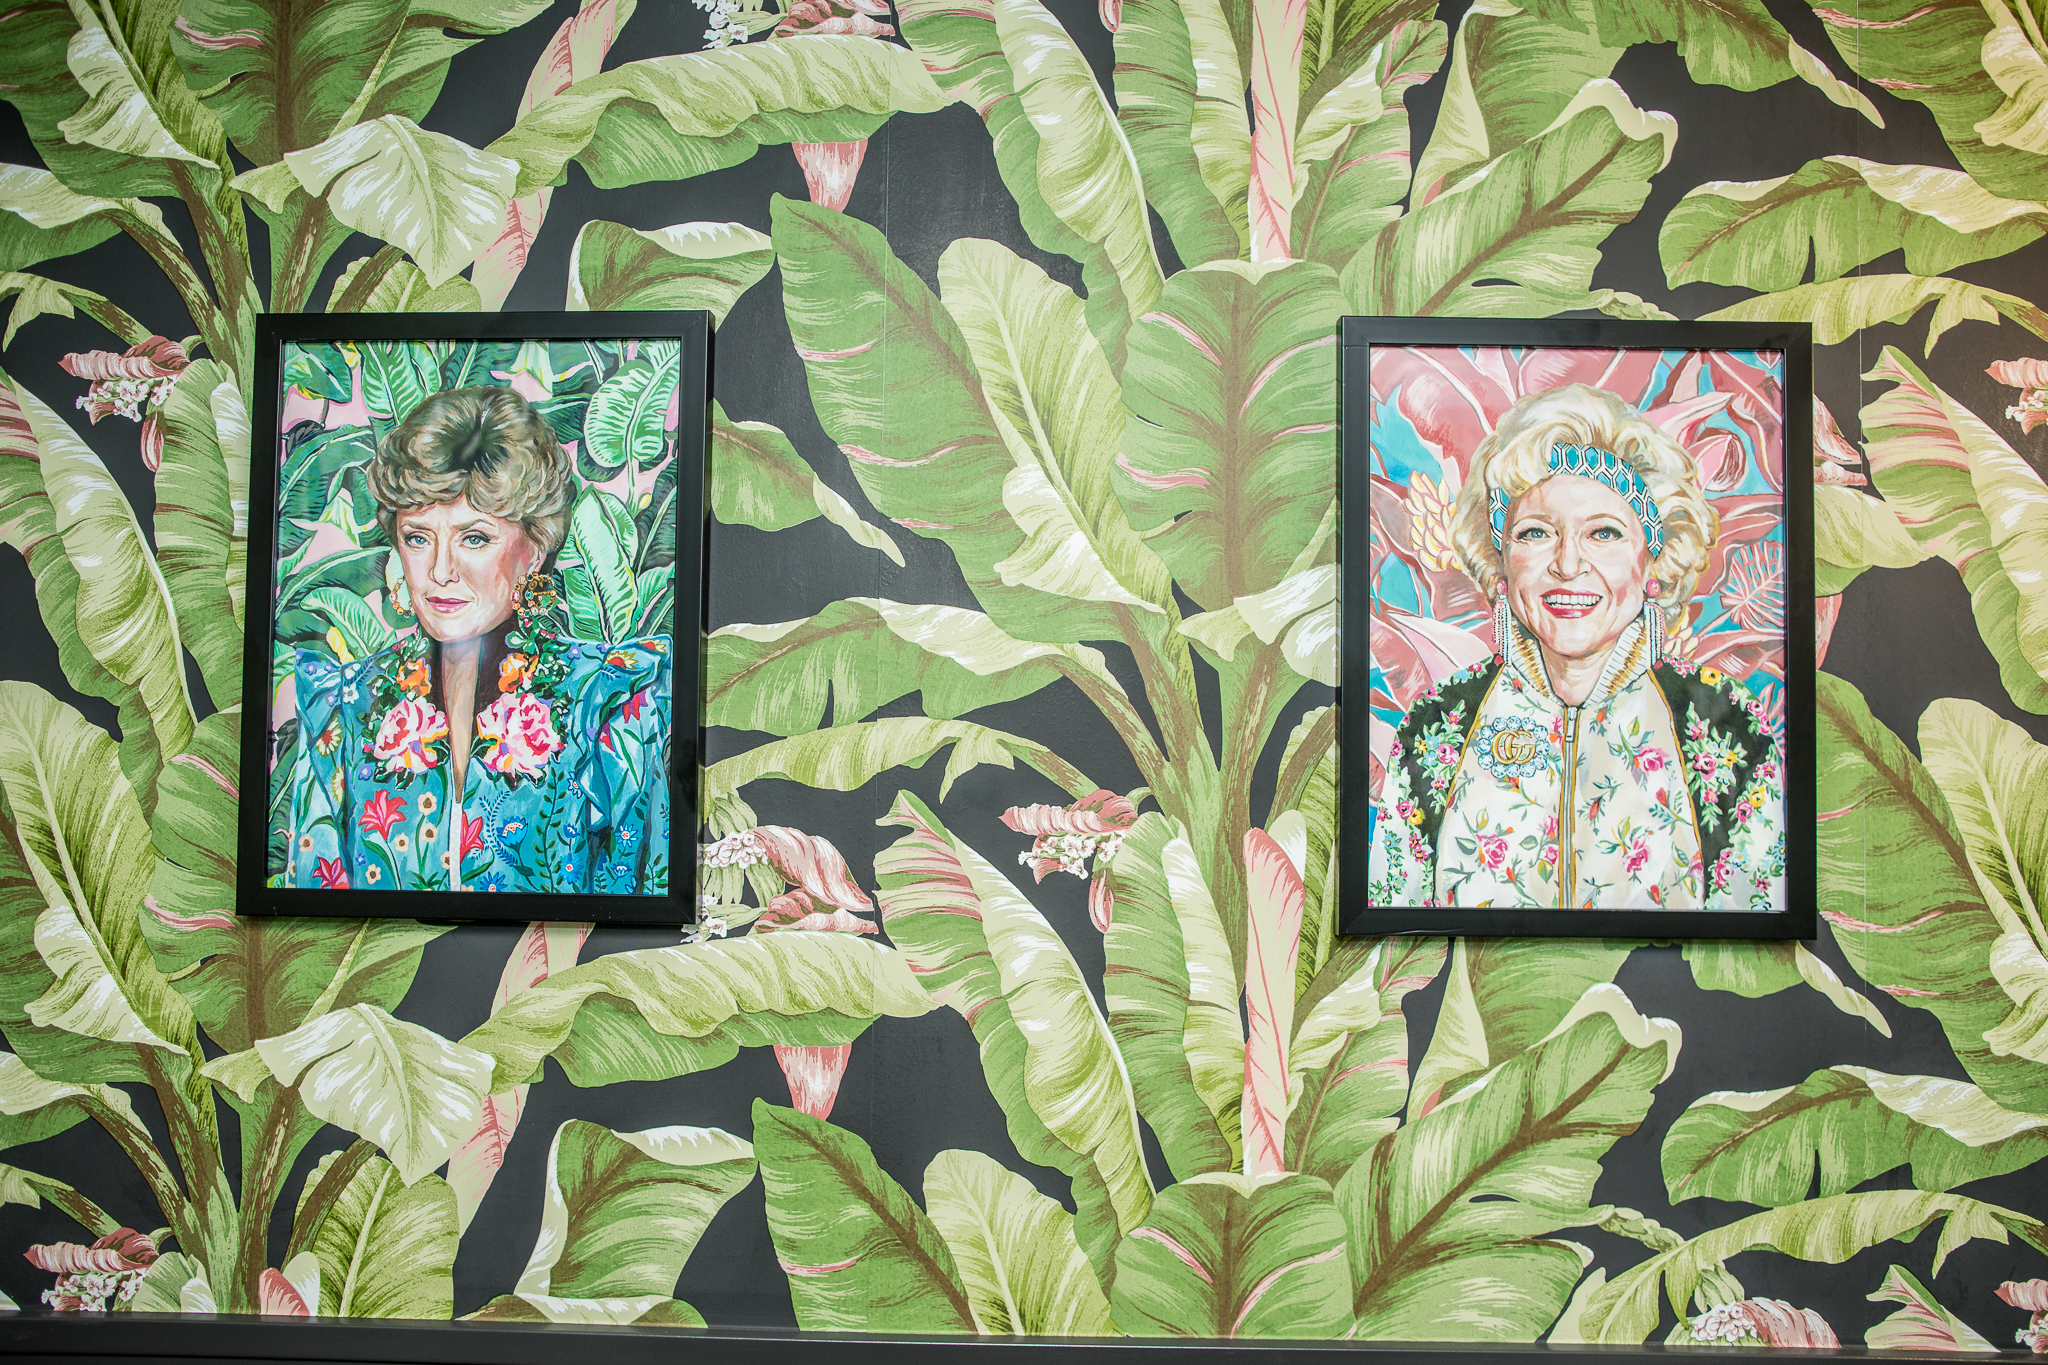 Colorful portraits of Blanche and Rose from the Golden Girls.